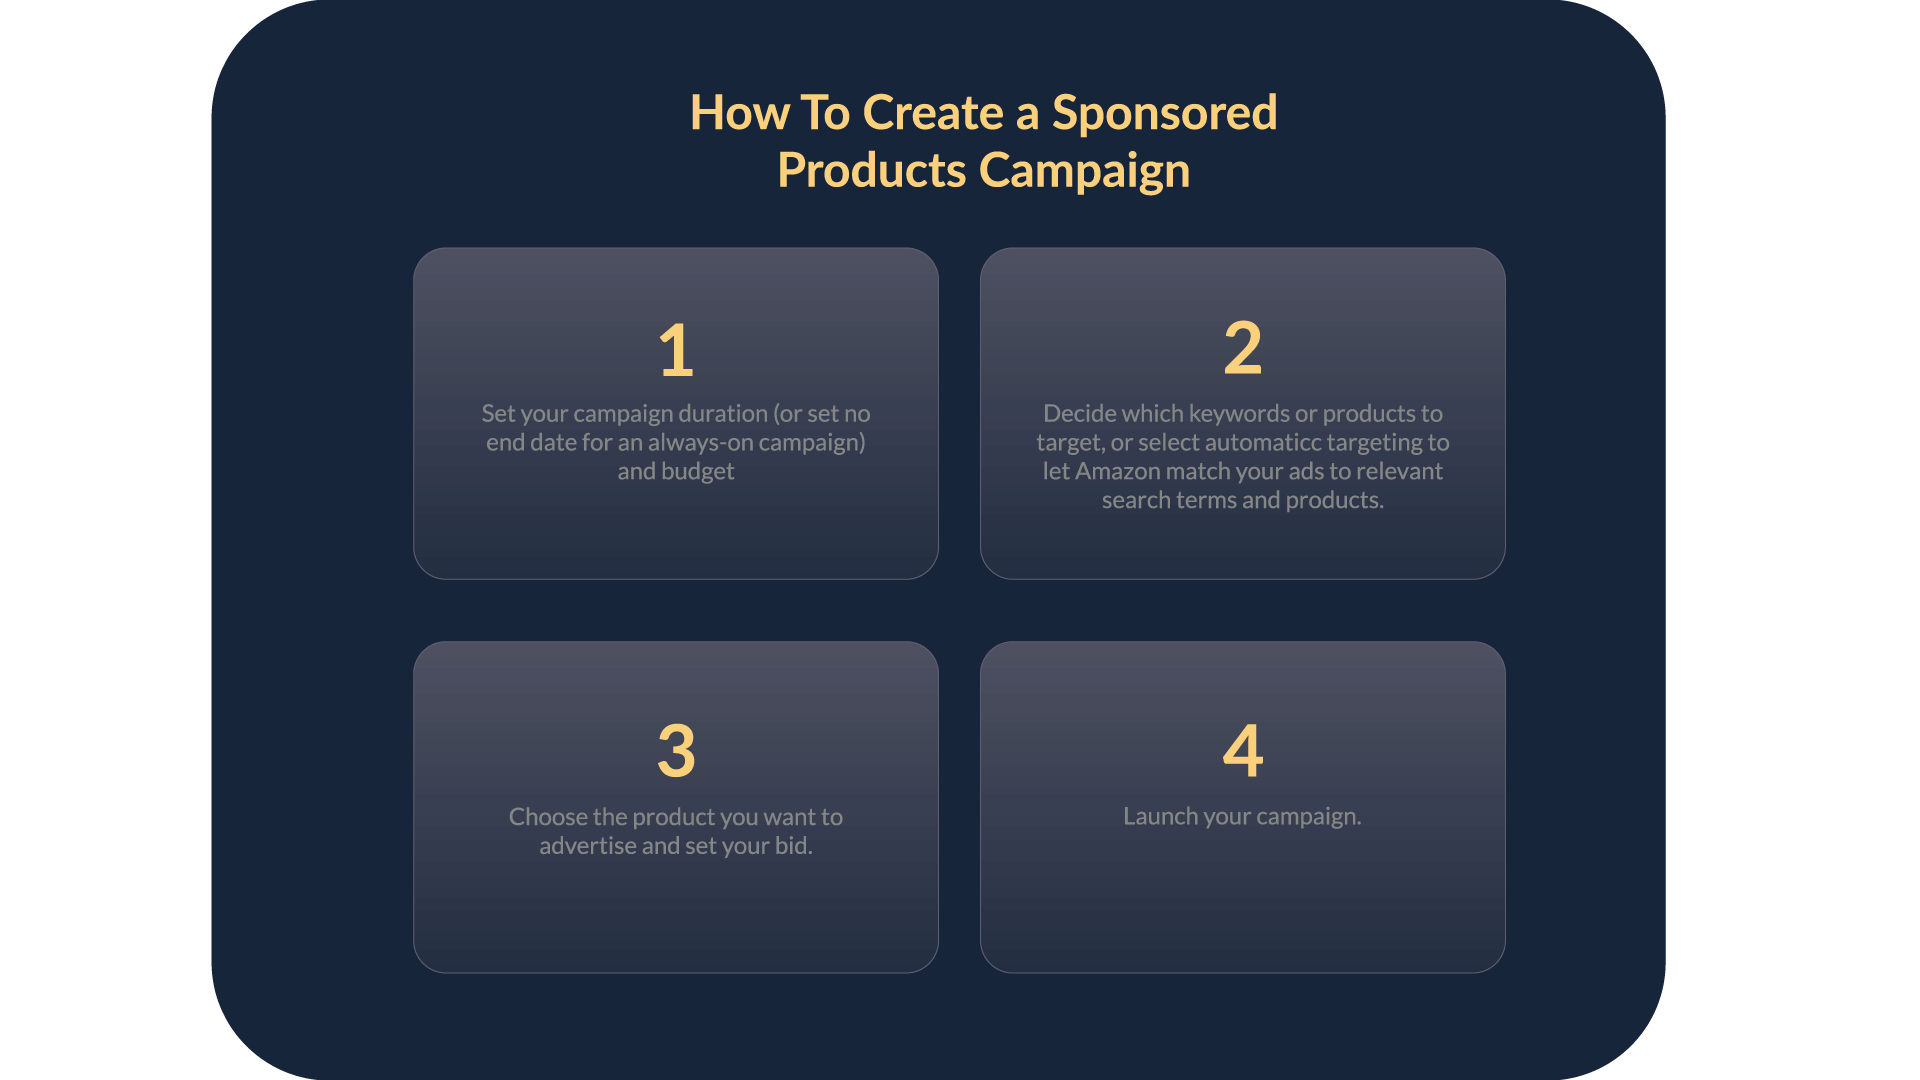 Amazon's 4 step process for launching a Sponsored Product Campaign.